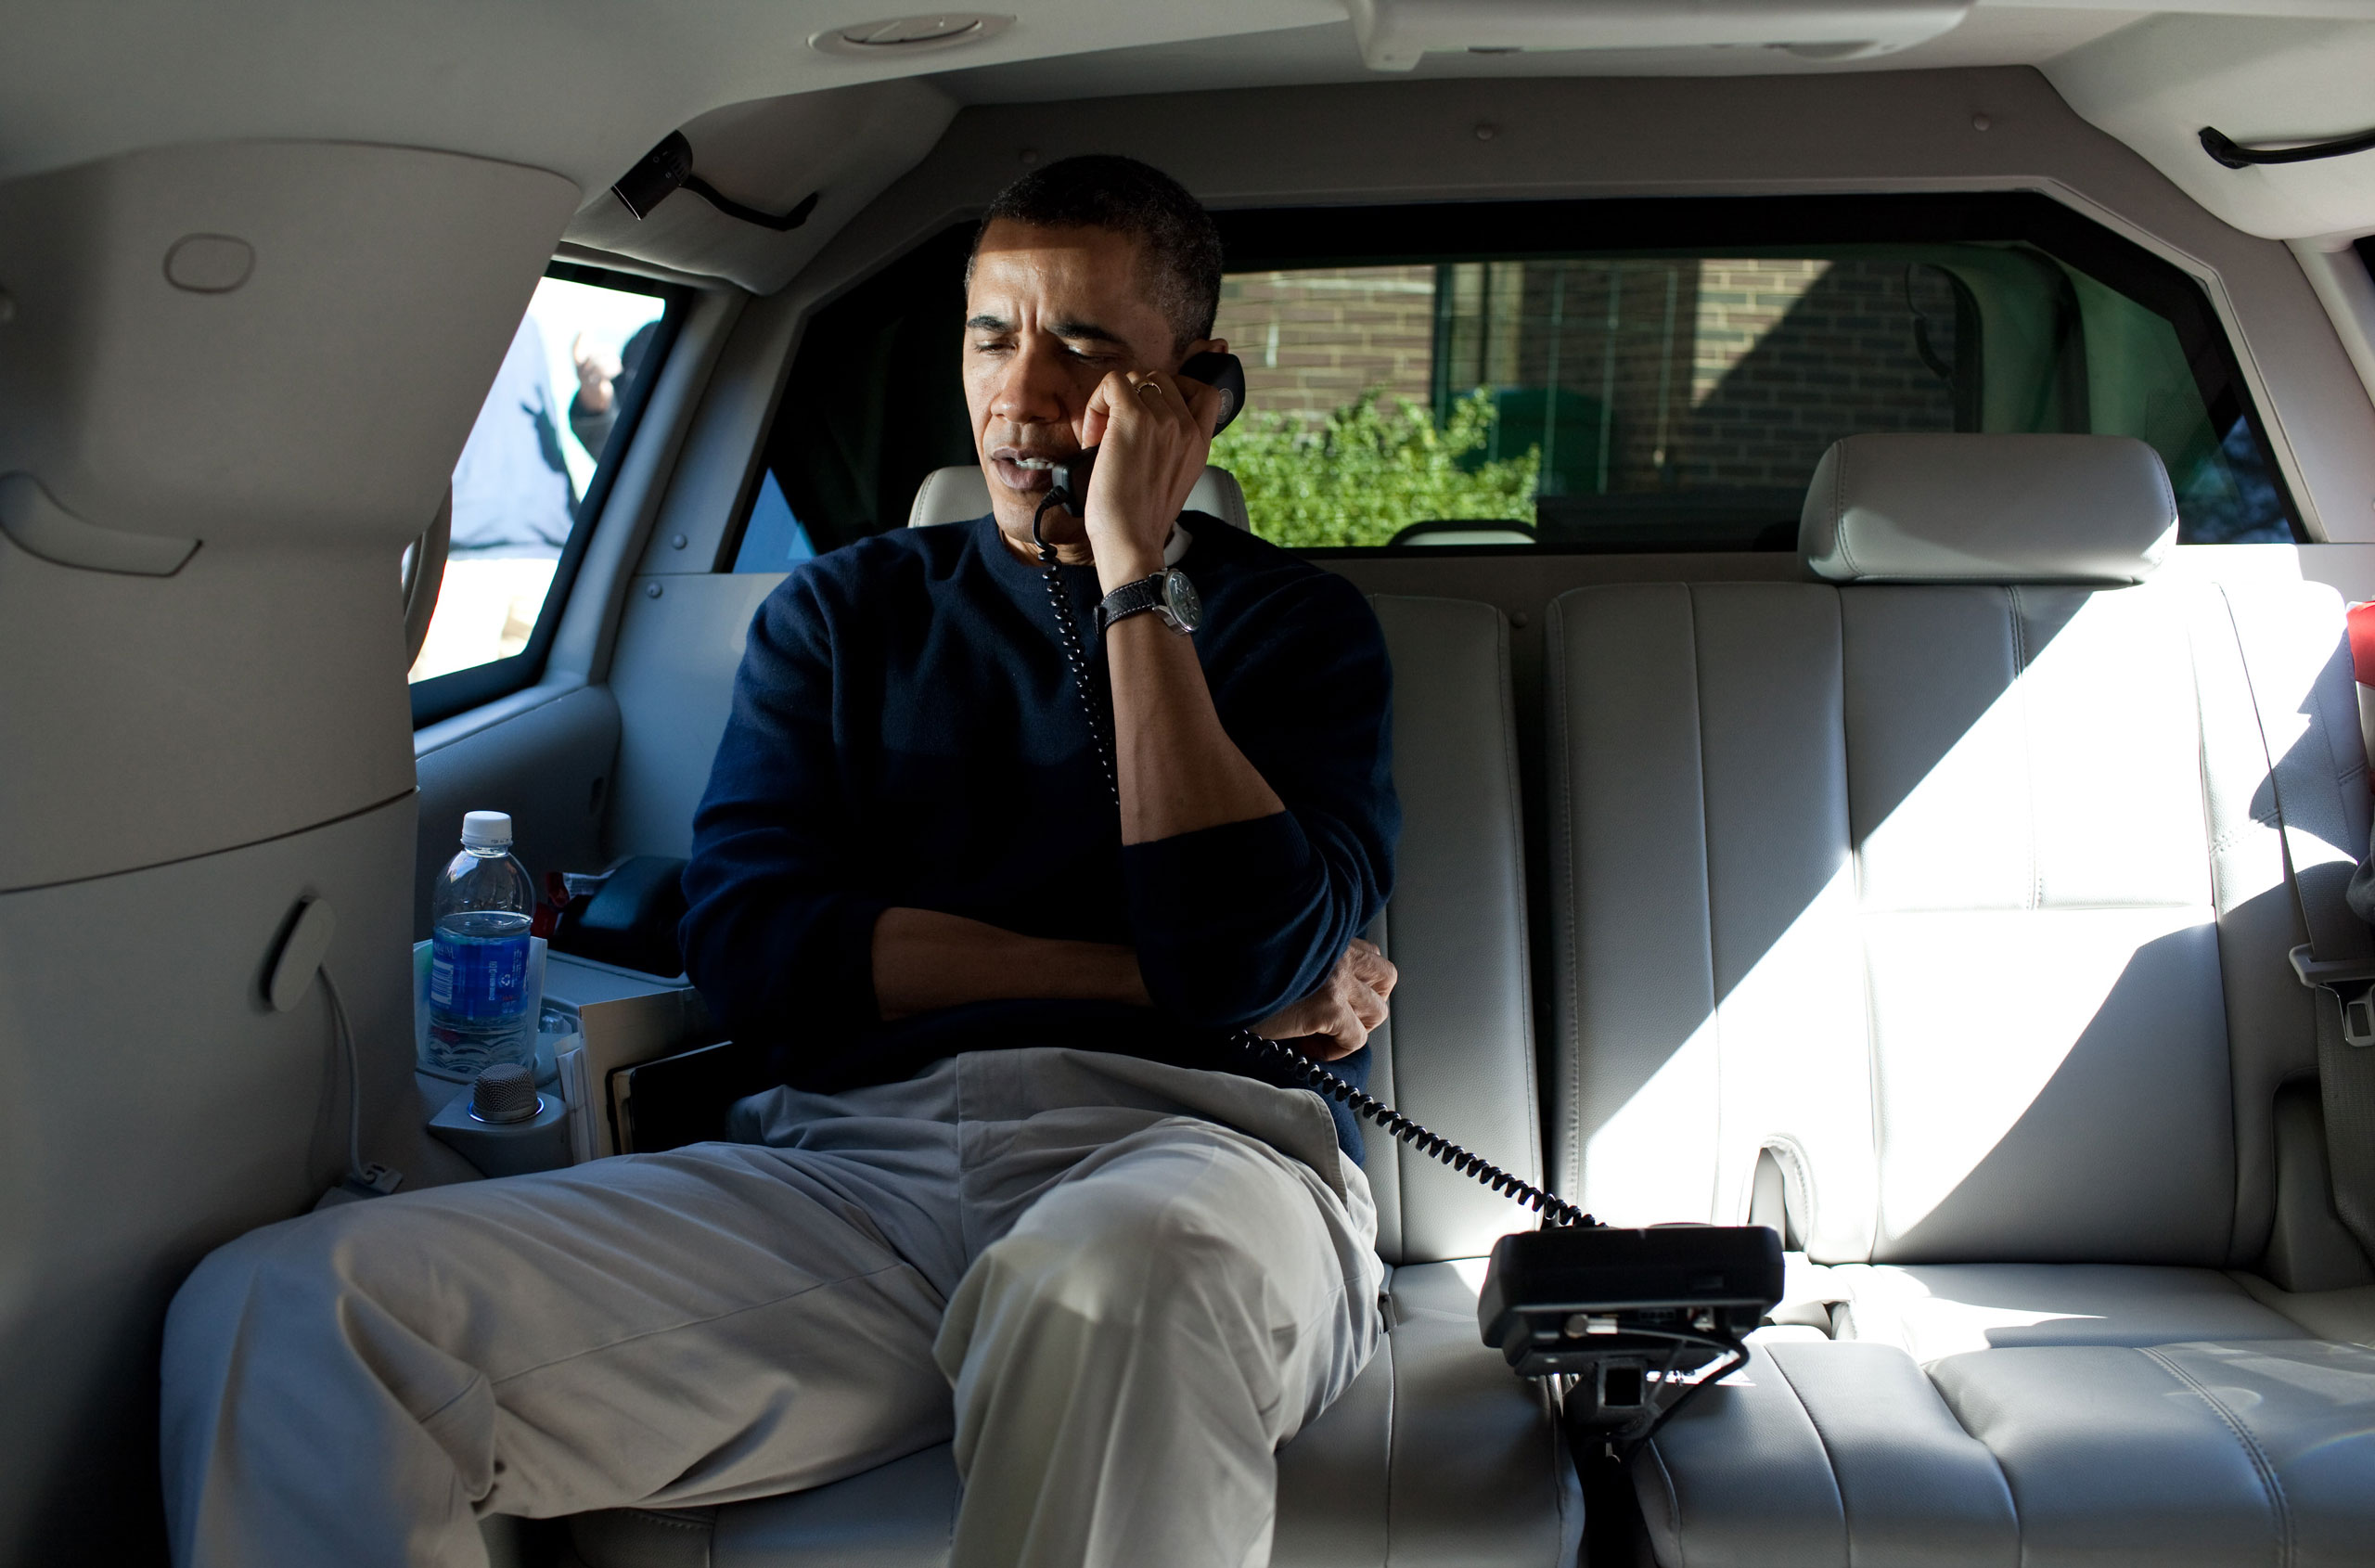 President Barack Obama talks on the phone with Afghanistan President Hamid Karzai from his vehicle outside the Jane E. Lawton Community Center in Chevy Chase, Maryland, Sunday, March 11, 2012.